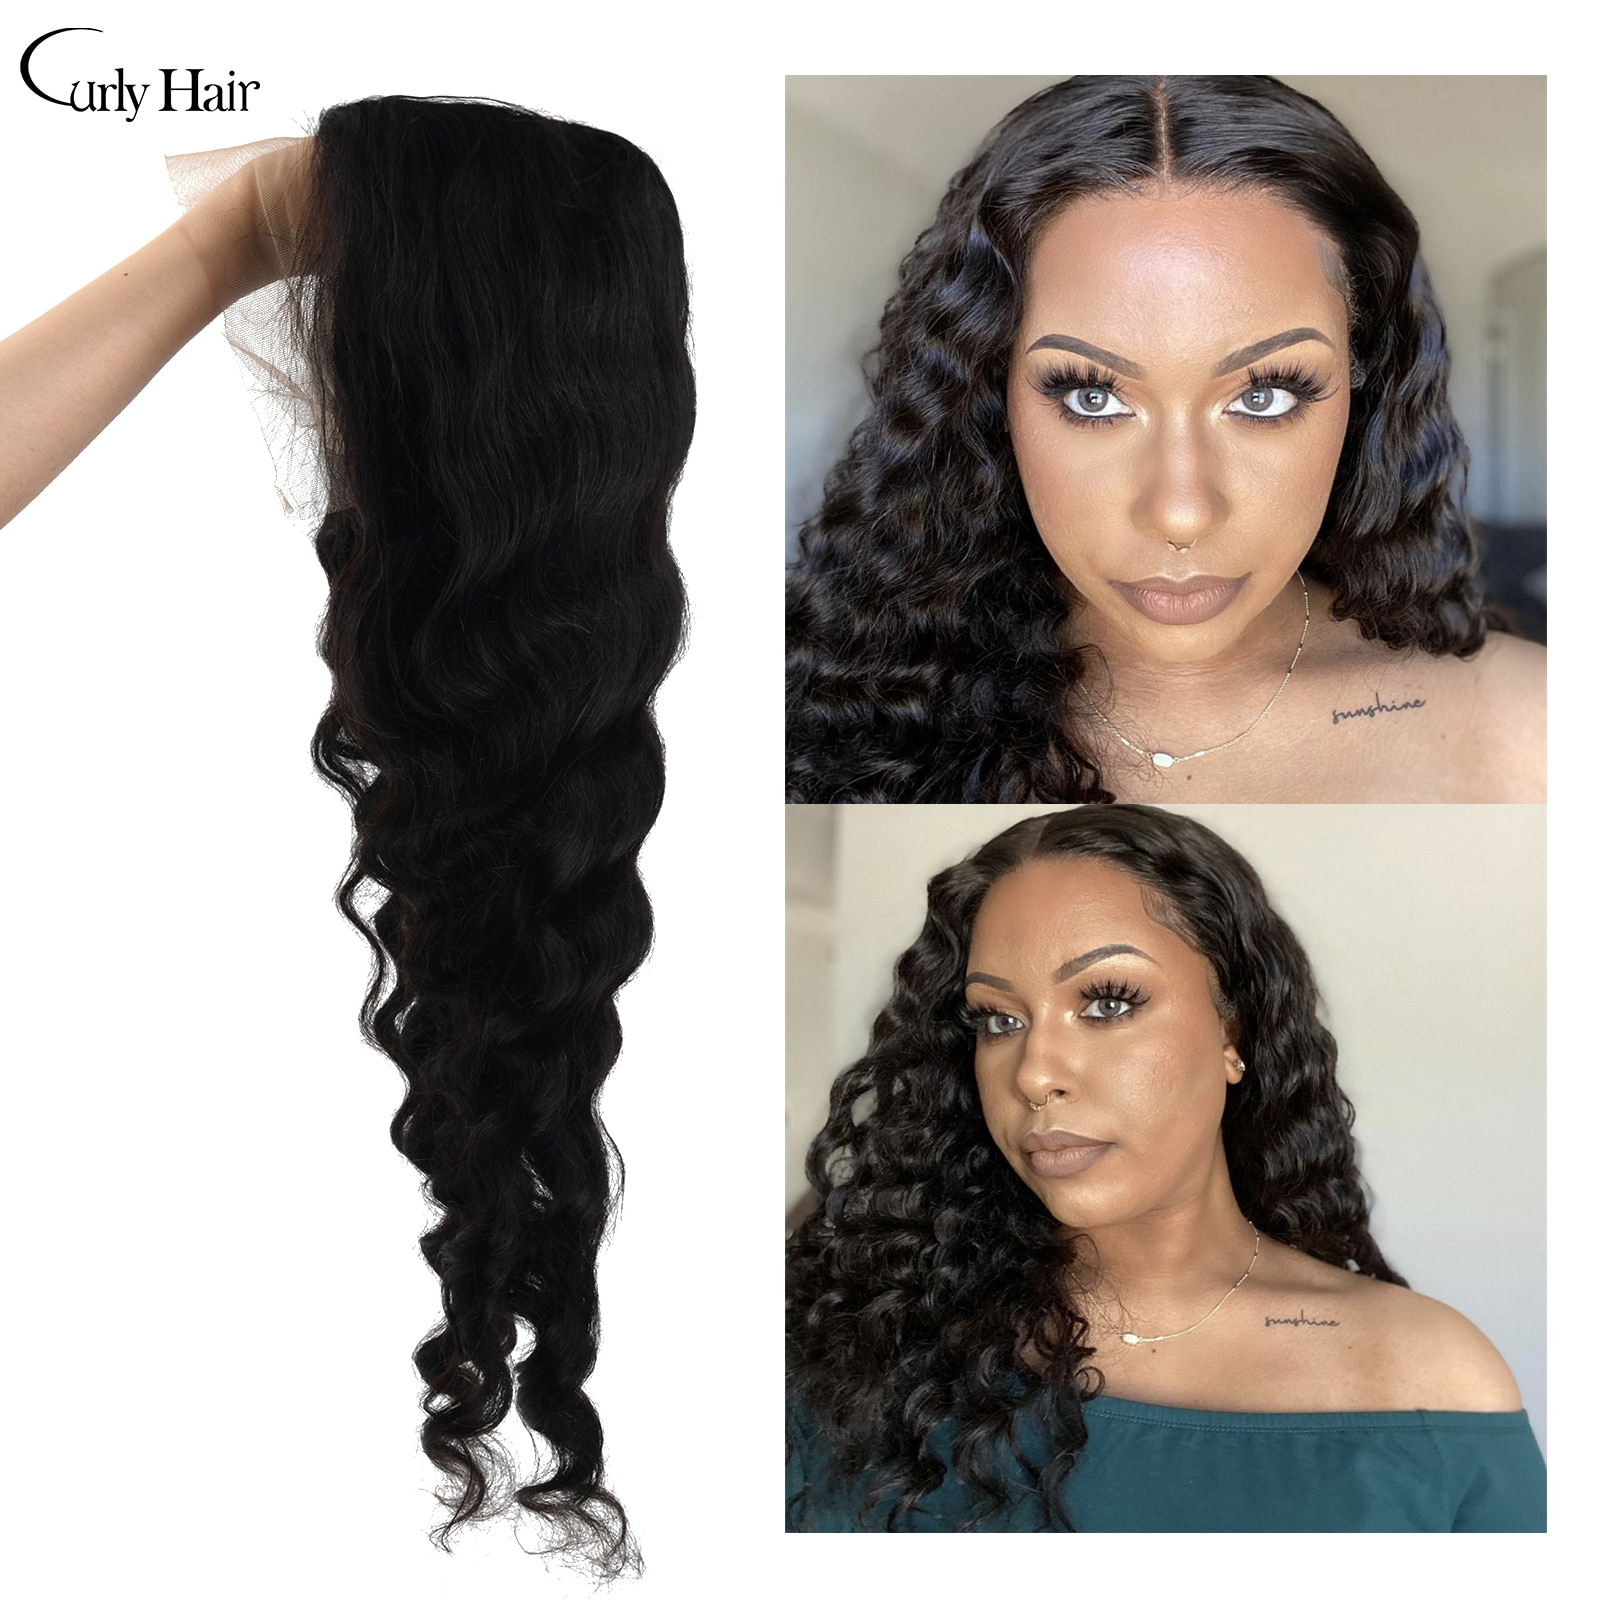 T-Part Deep Wave Lace Closure Wig 24 inches Brazilian 100% Human Hair Wigs For Women Natural Color With Baby Hair 150% Density